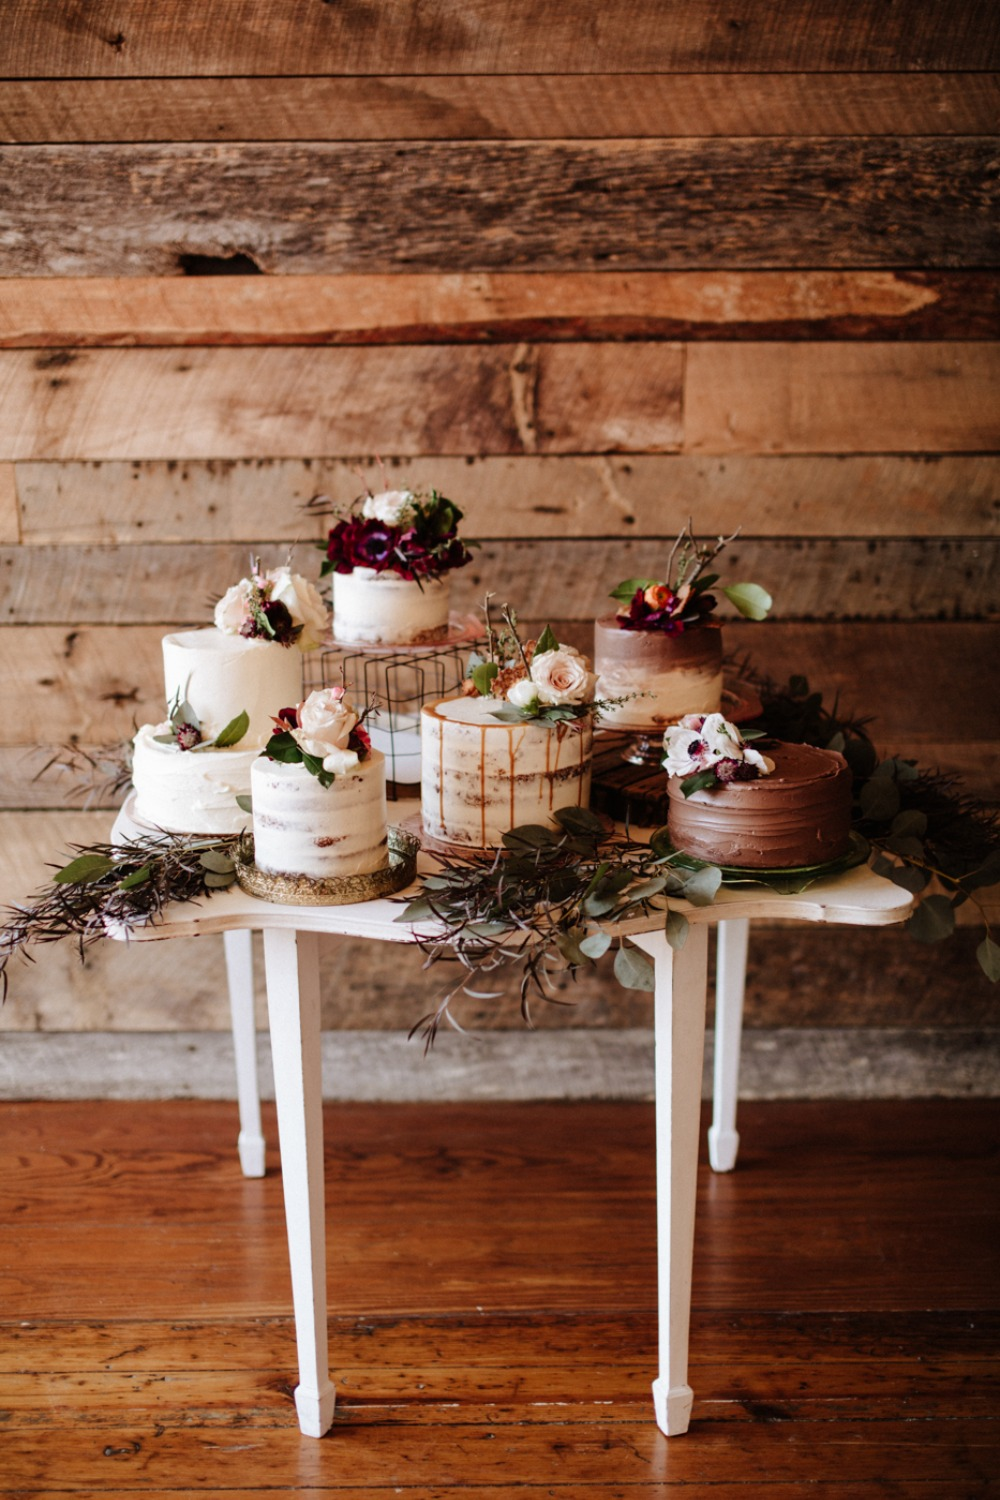 Six wedding cakes are better than one